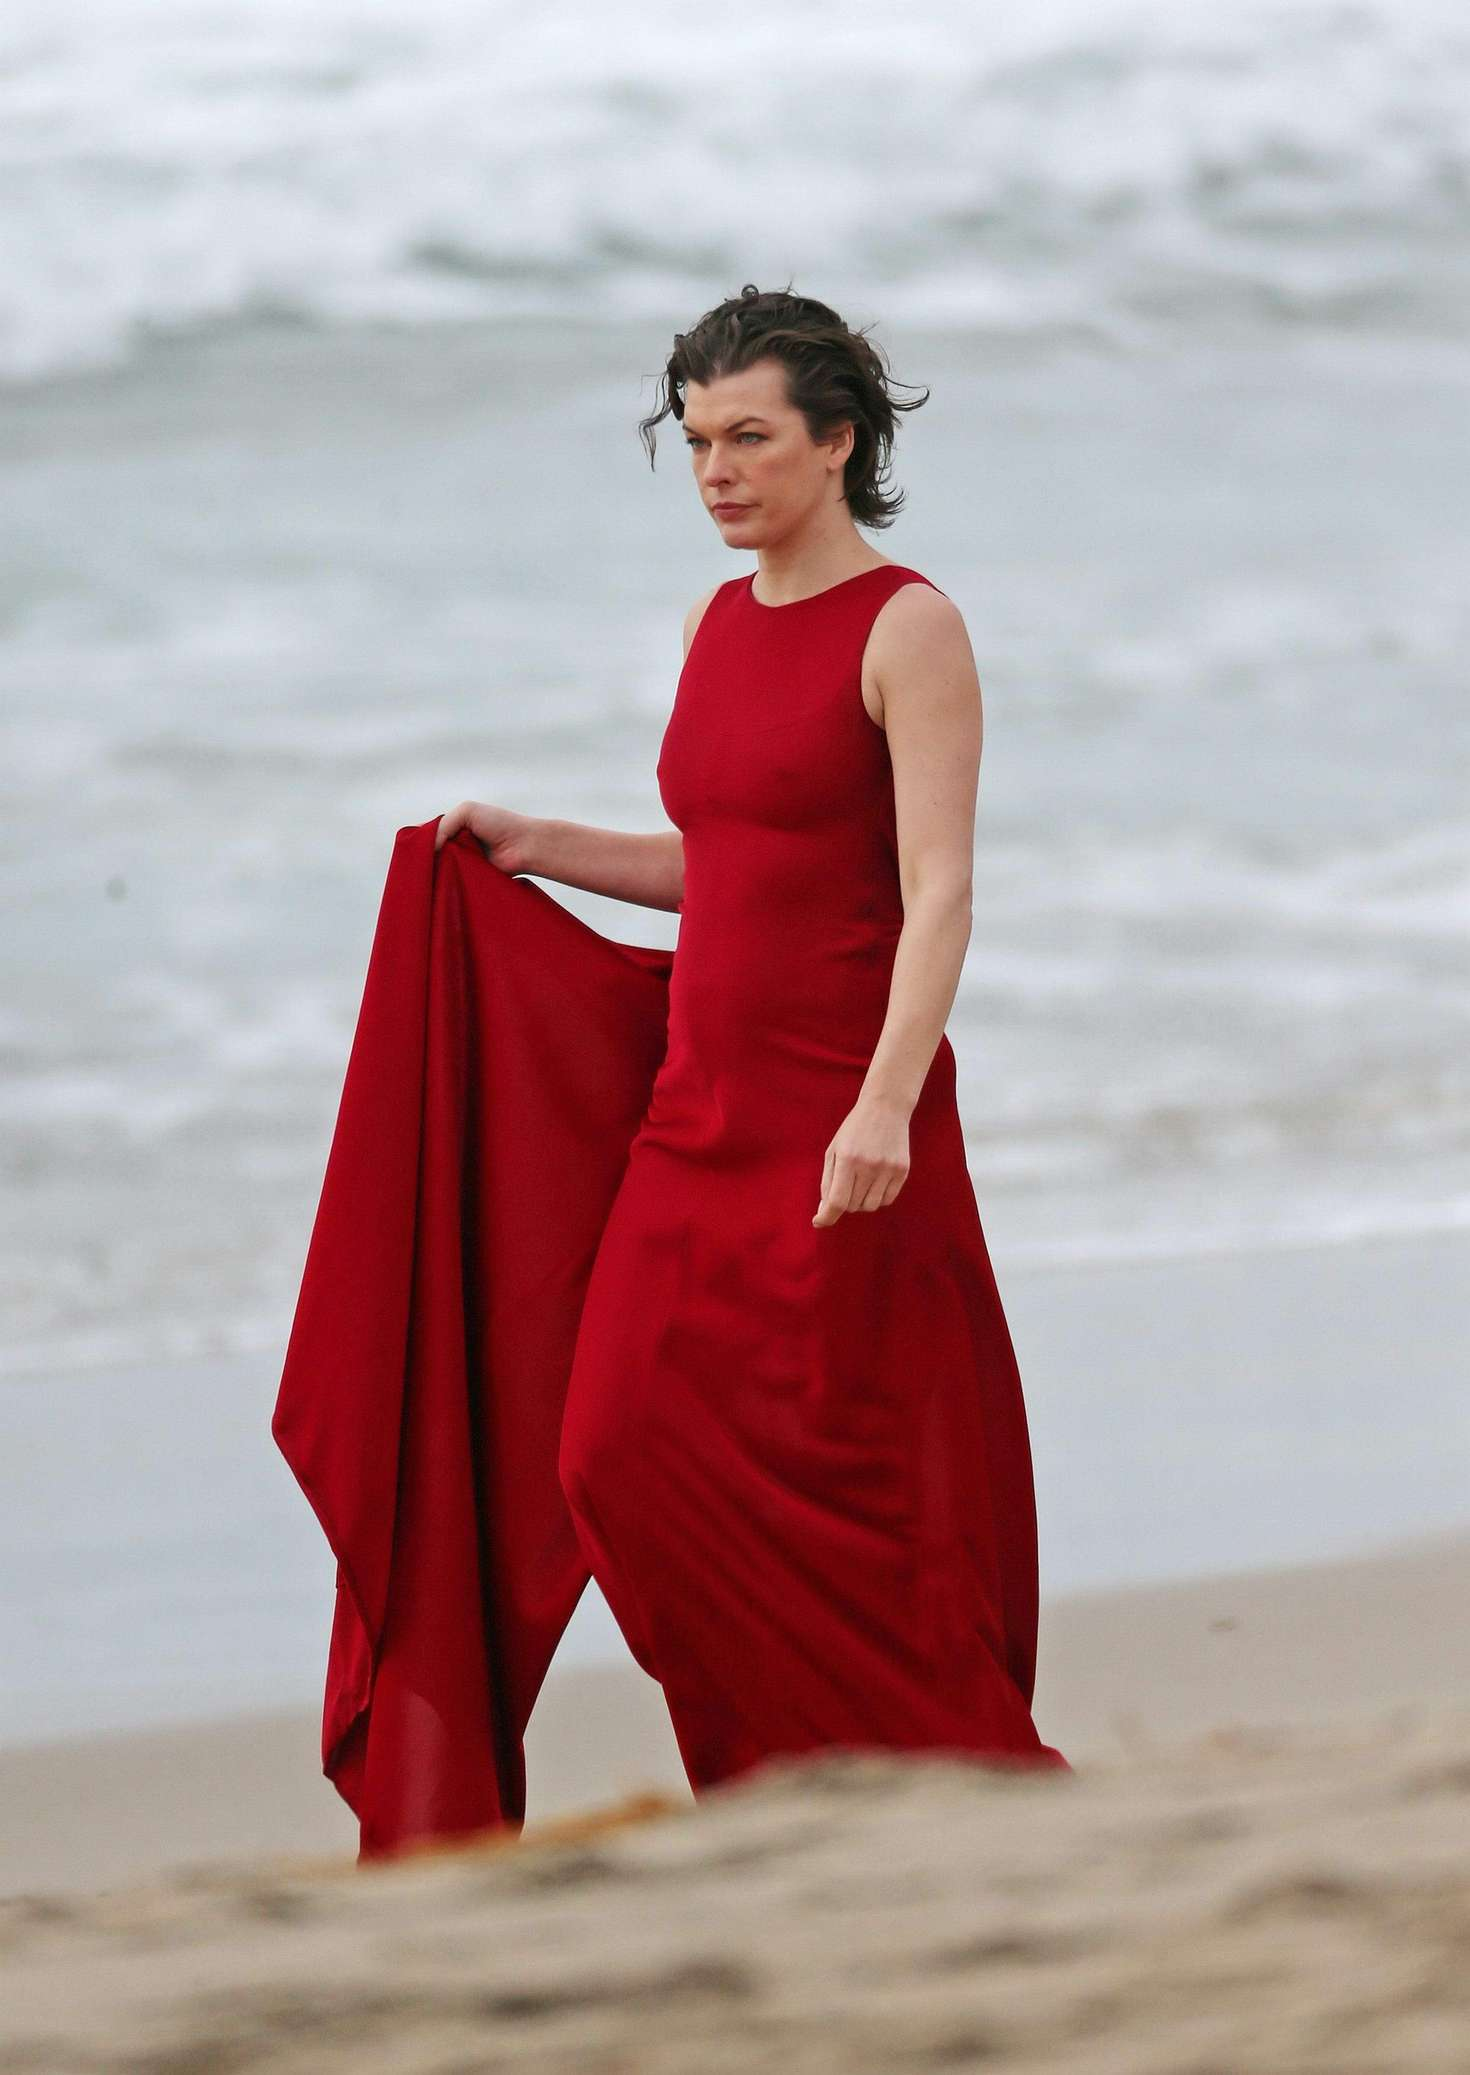 milla jovovich in red dress on photoshoot 39 gotceleb